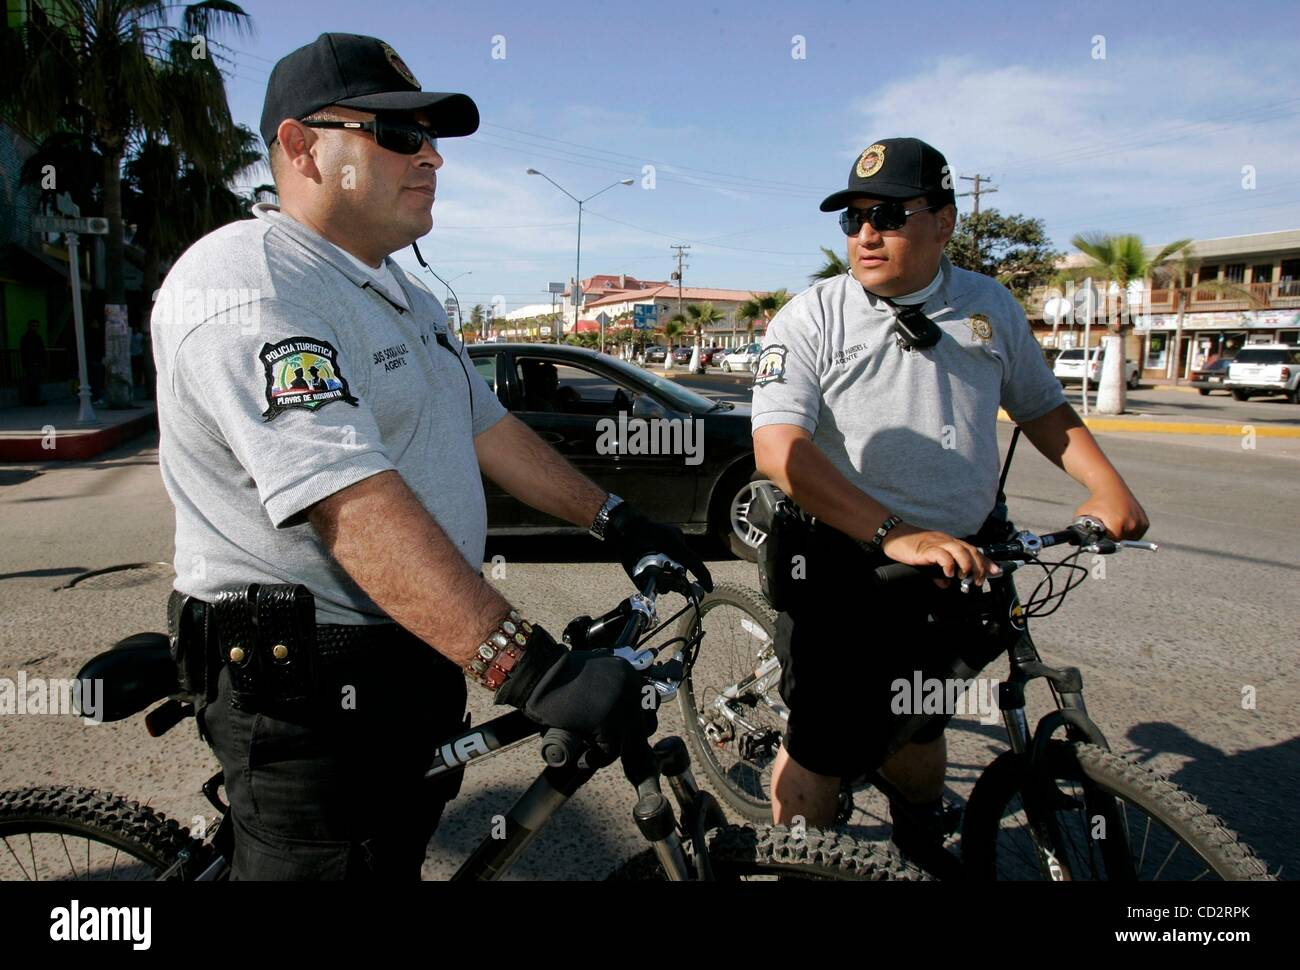 Mar 19, 2008 - Rosarito Beach, MEXICO - Rosarito Beach Tourist Police officers on bicycles JESUS SOQUI GALAZ, left, - Stock Image